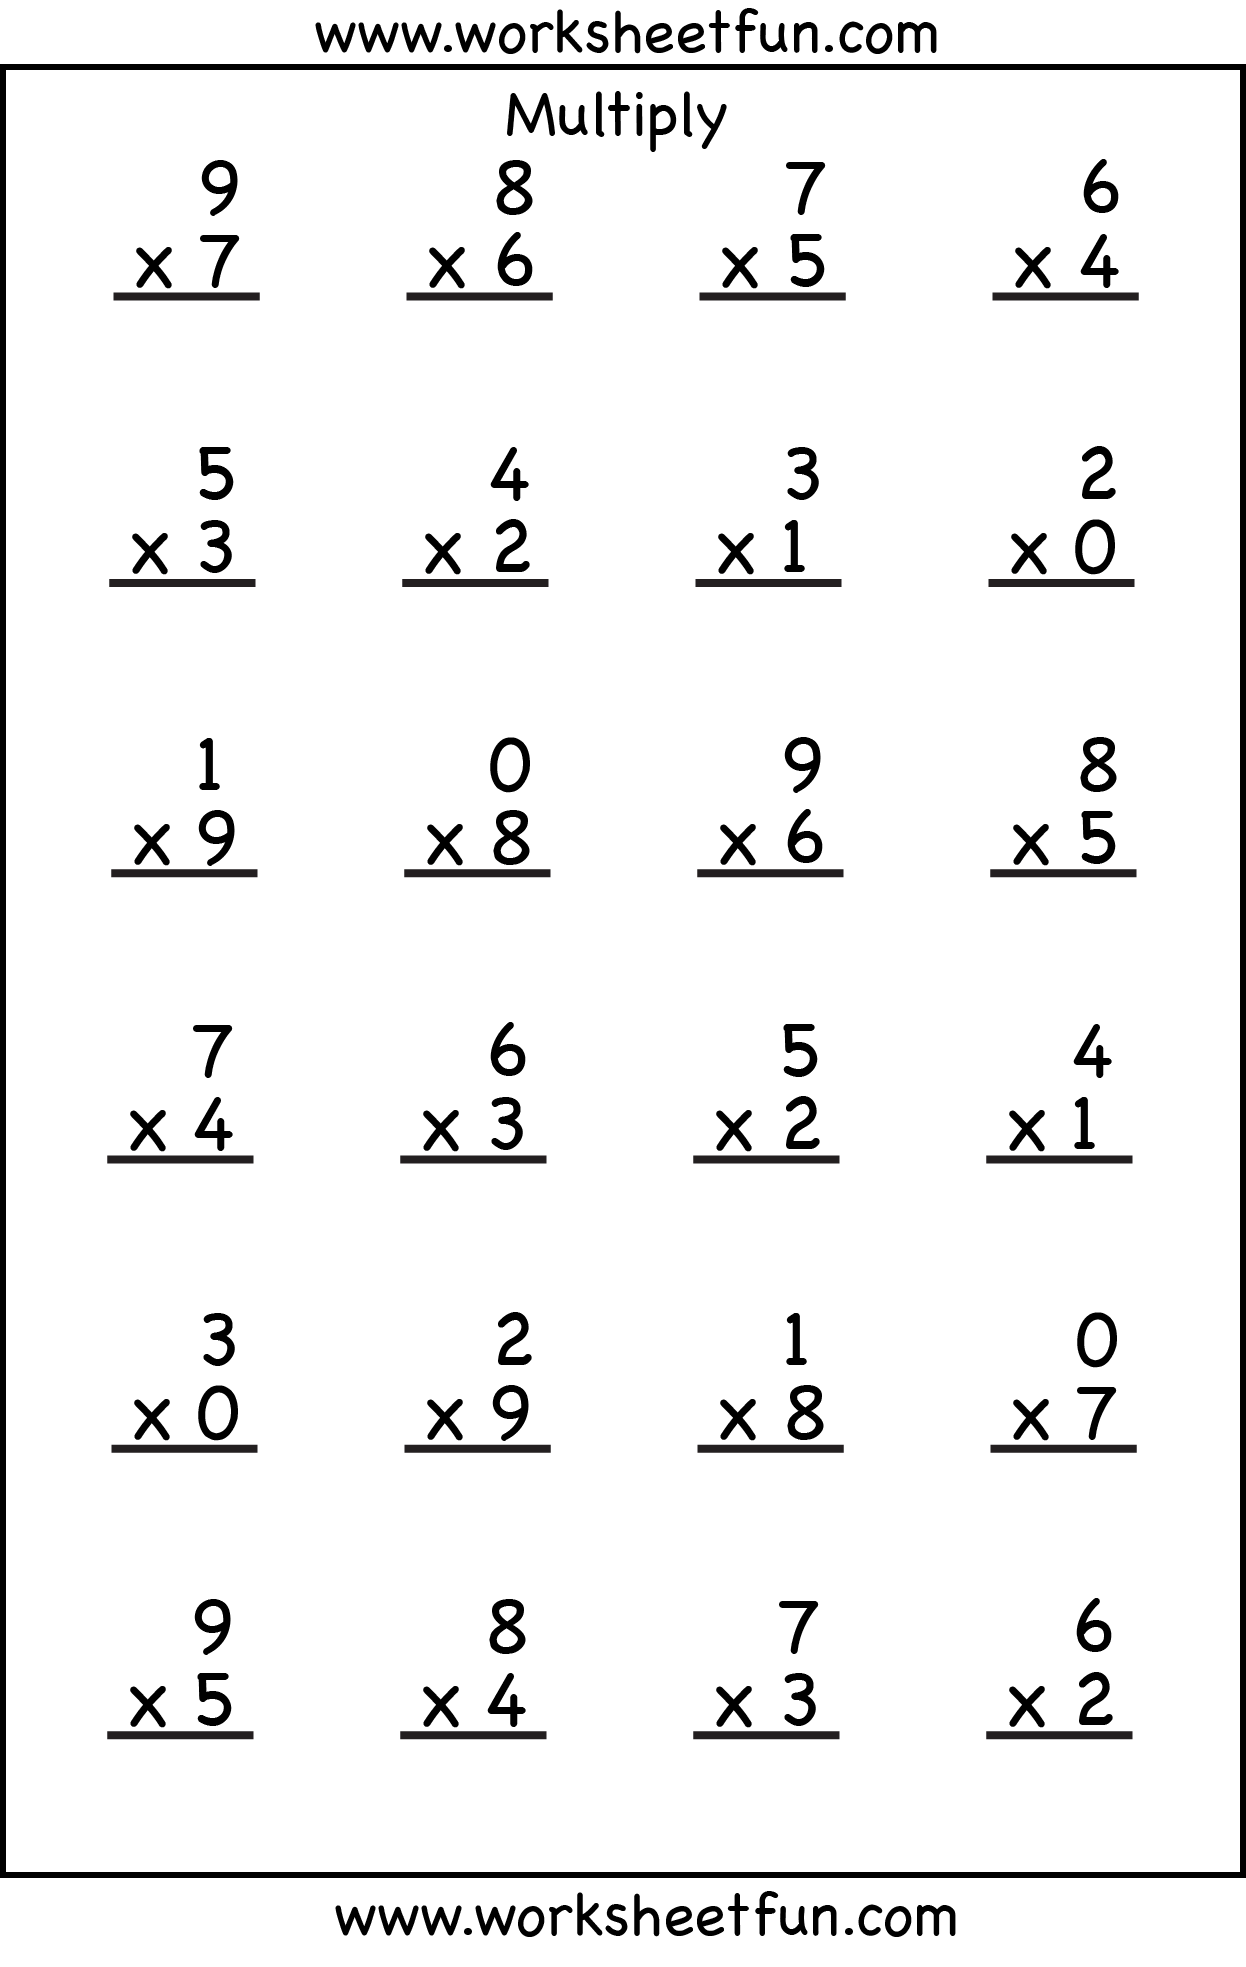 05 Multiplication Worksheets – Math Worksheets for Grade 5 Multiplication